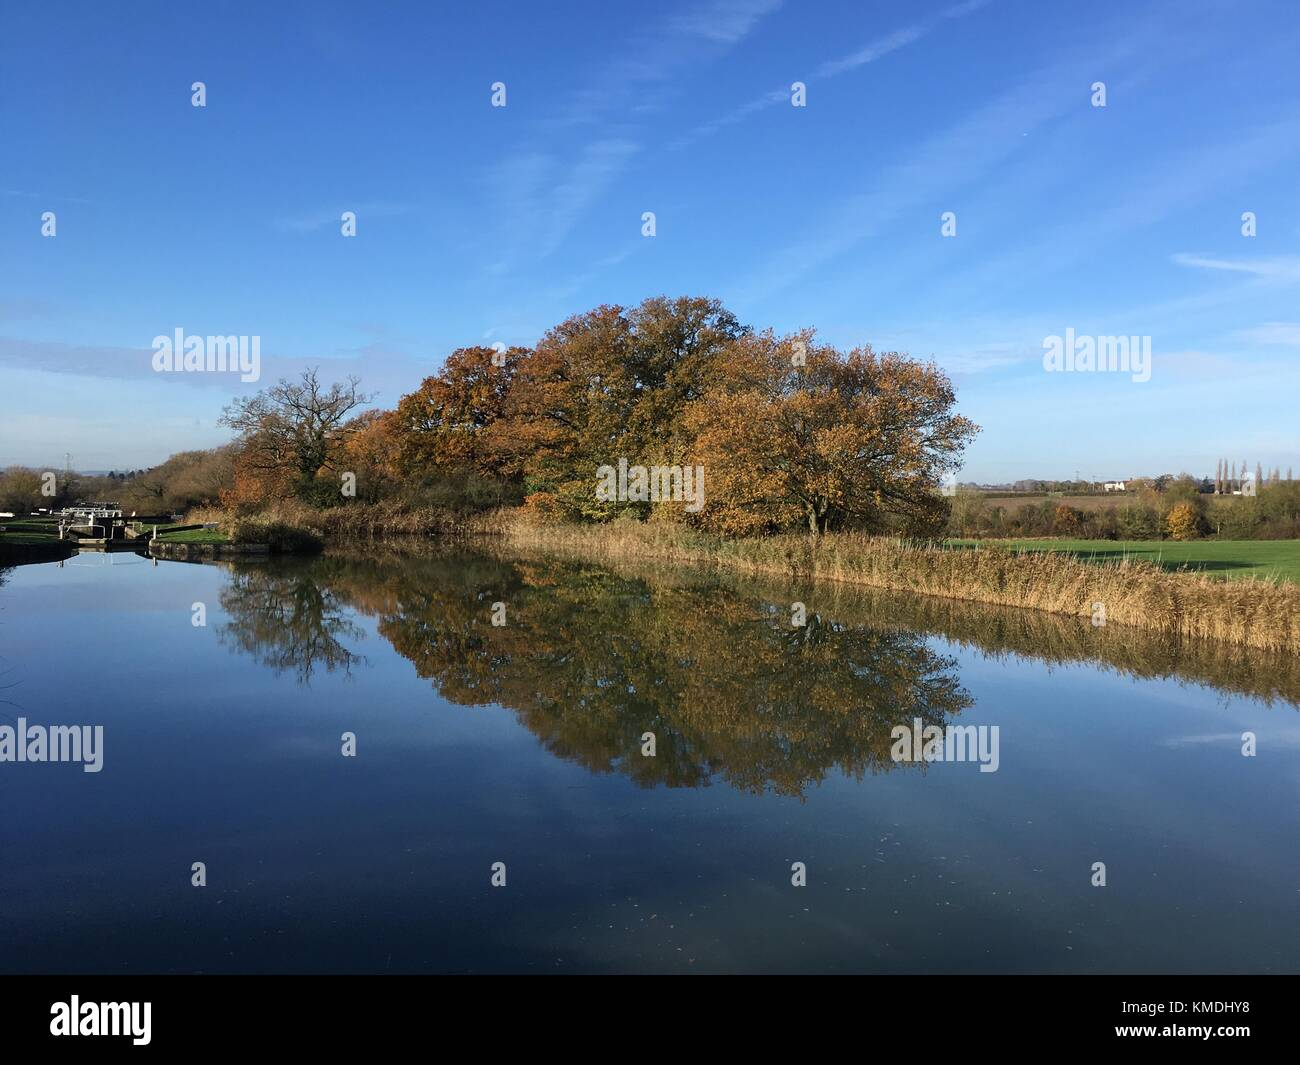 Trees pictured along the towpath of the Kennet and Avon Canal near Devizes in Wiltshire U.K. - Stock Image